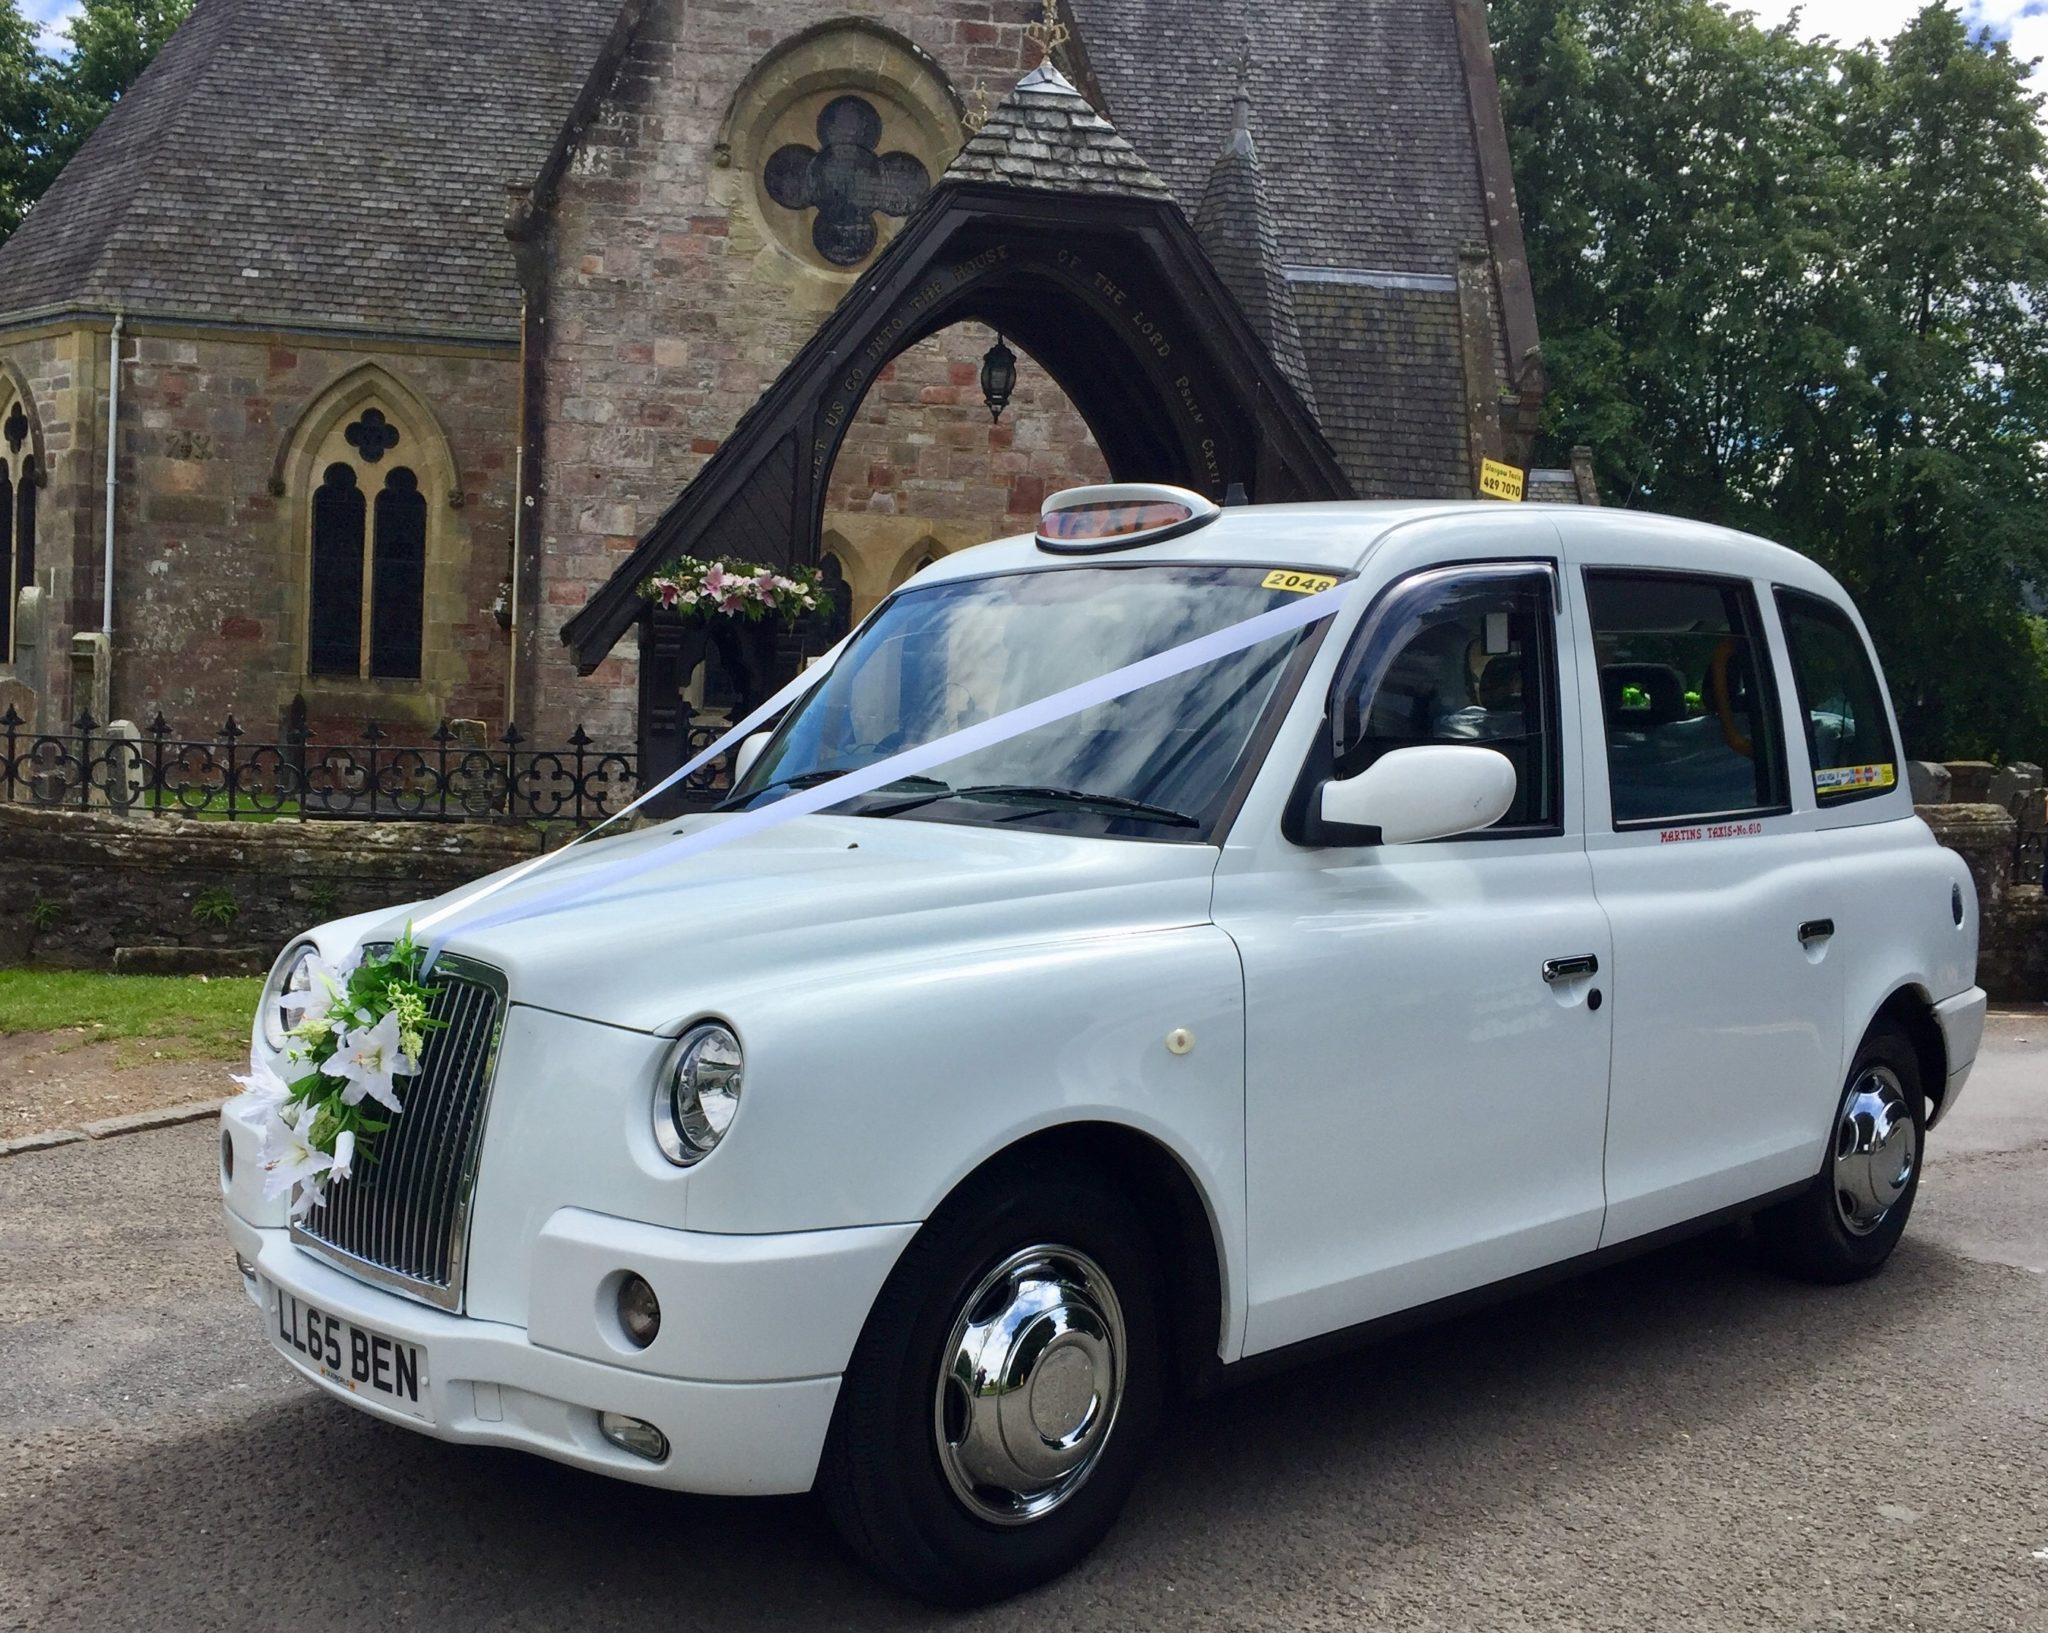 Glasgow Taxis wedding car